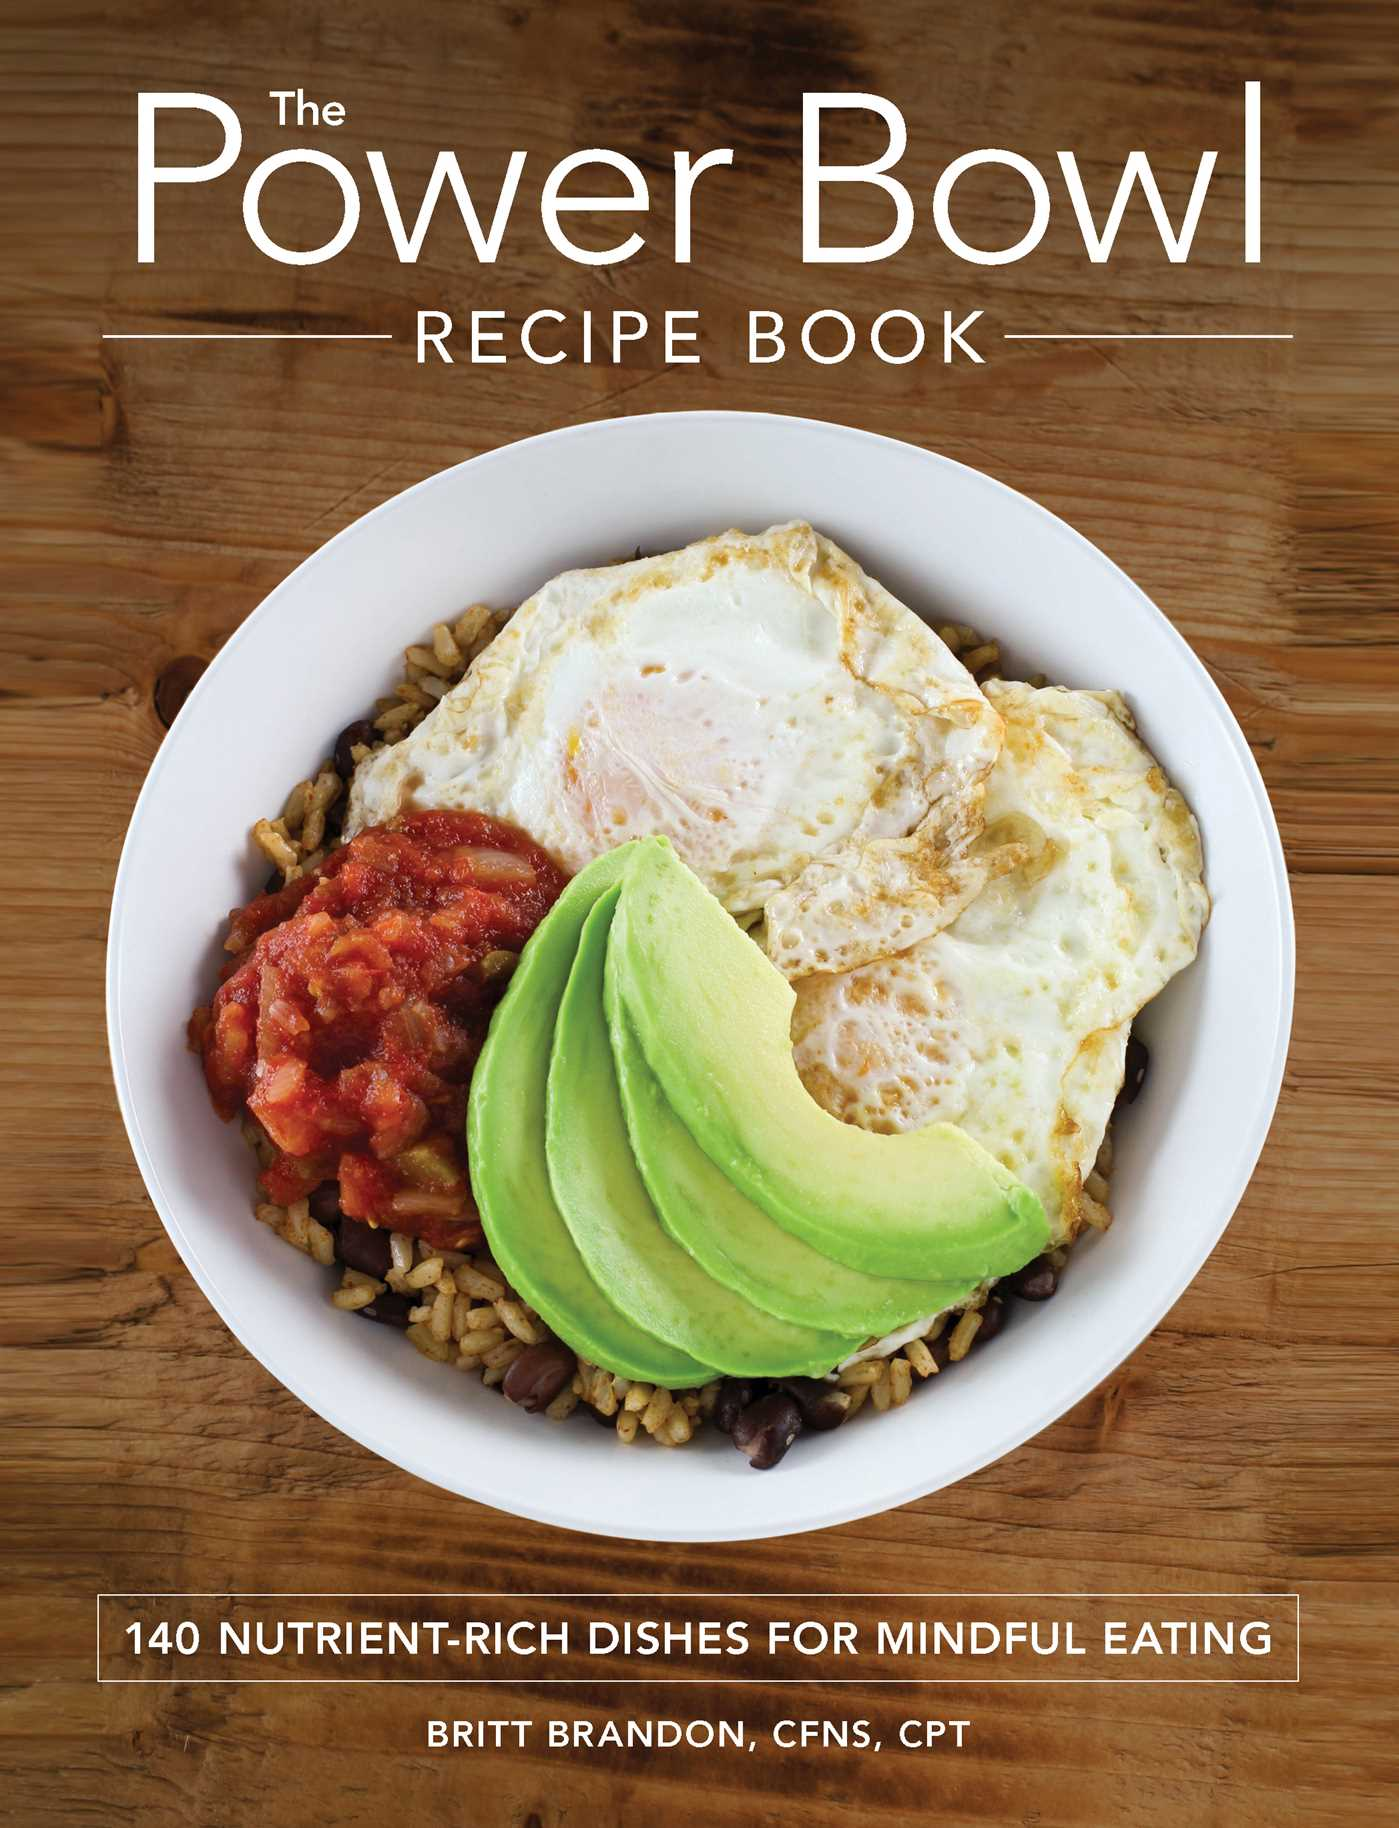 The power bowl recipe book book by britt brandon official book cover image jpg the power bowl recipe book forumfinder Gallery